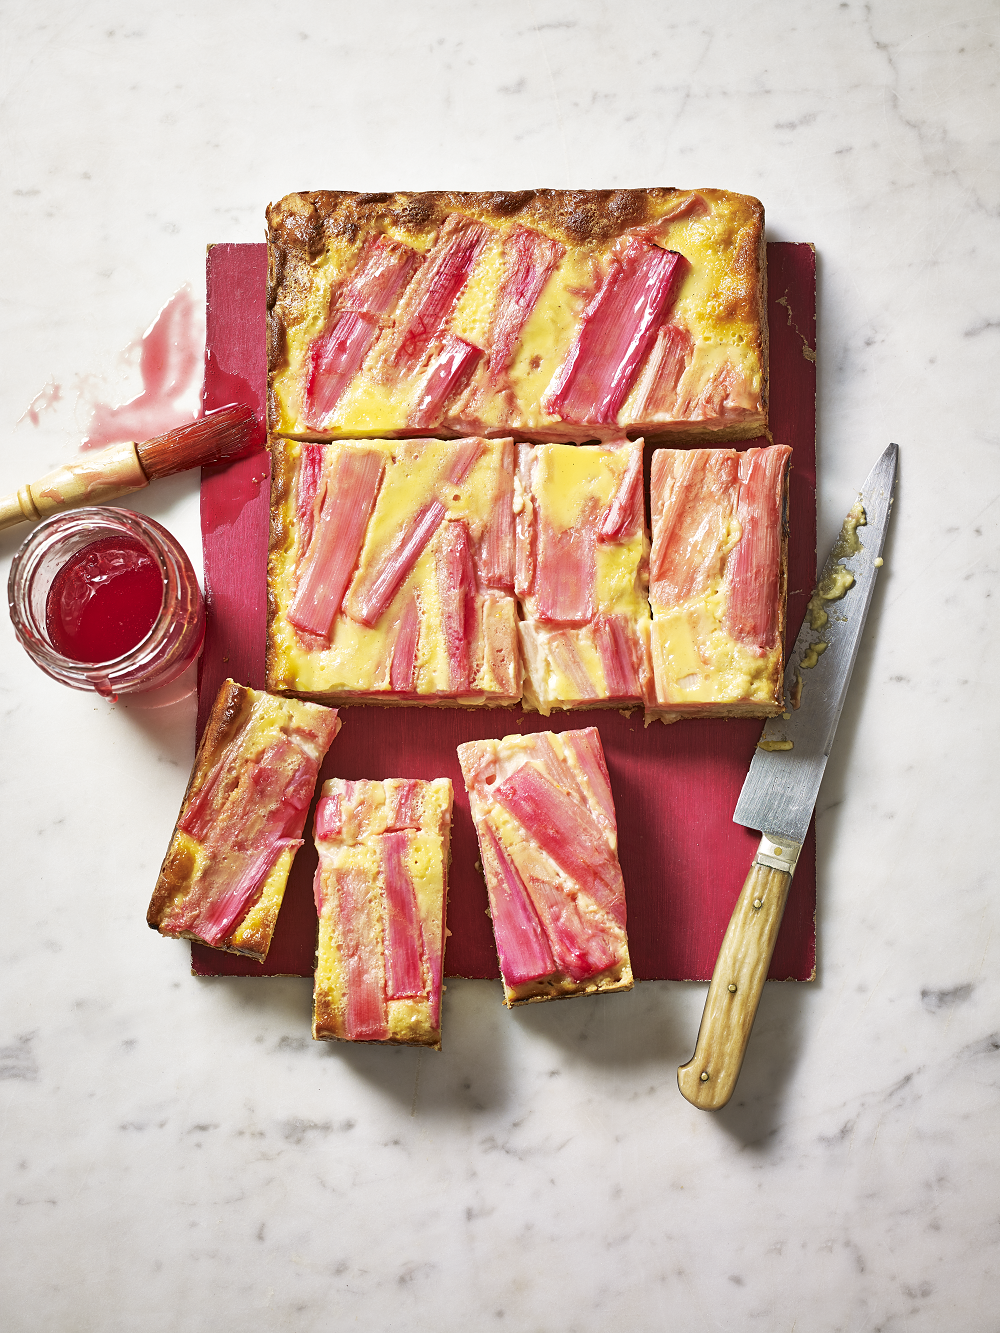 9 Rhubarb Recipes To Try Out This Spring